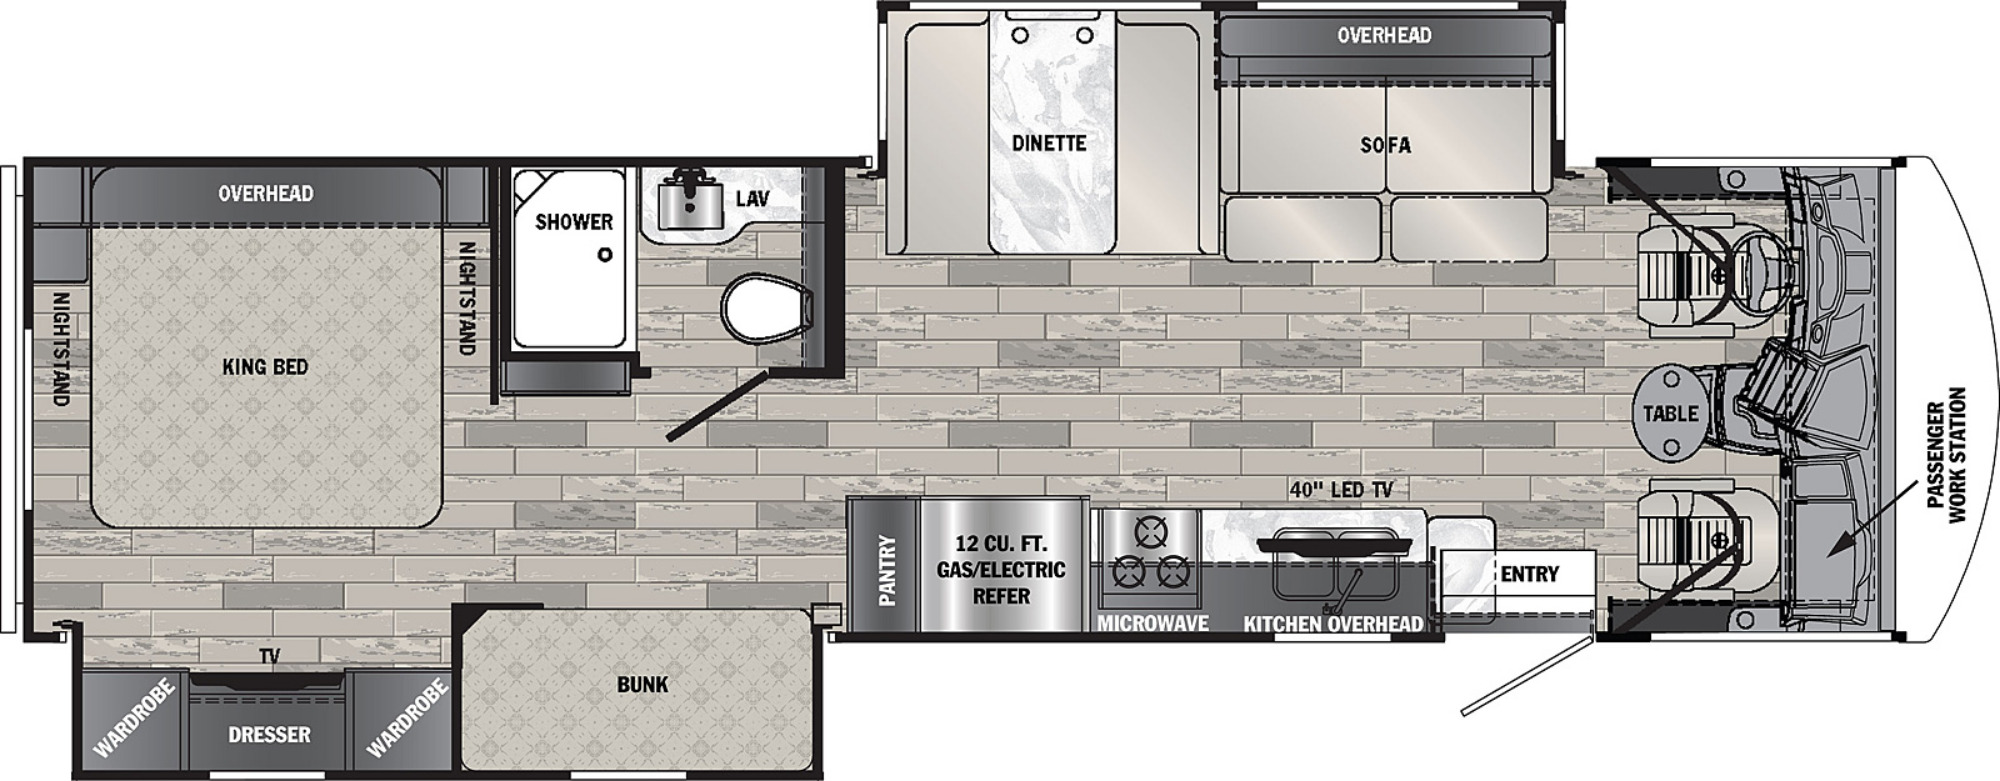 View Floor Plan for 2022 FOREST RIVER GEORGETOWN 3 SERIES 33B